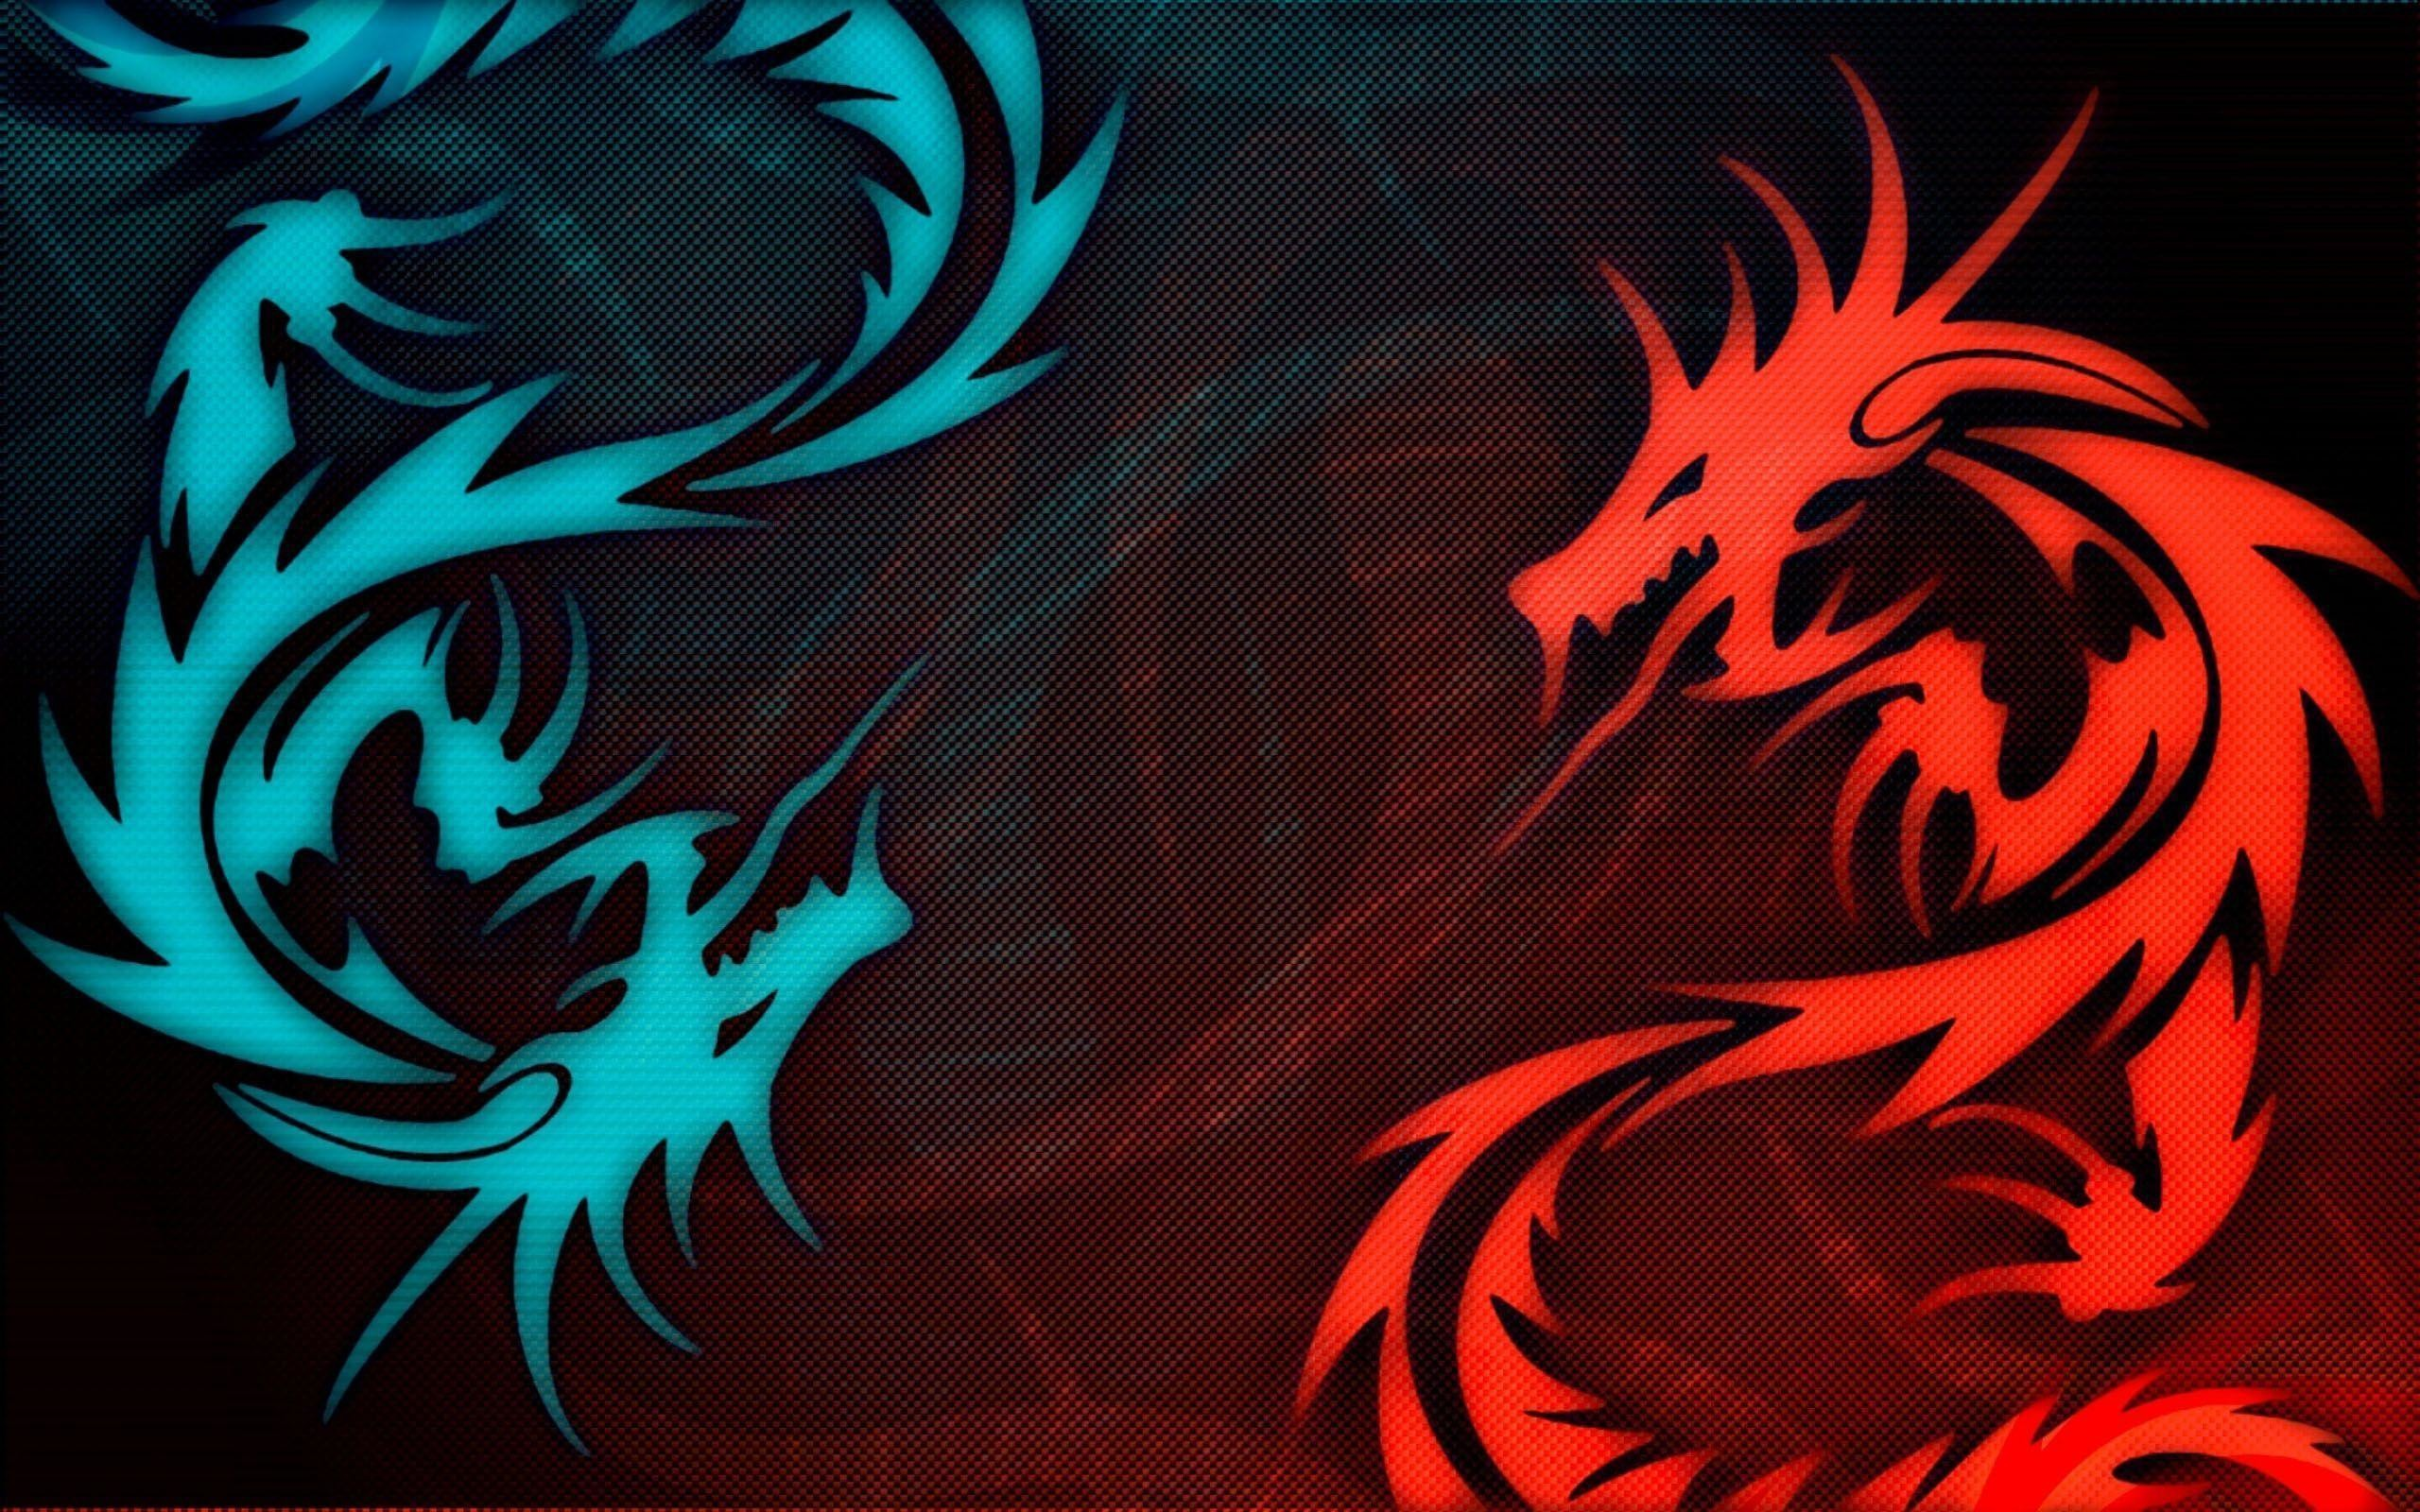 Black Rose Dragon Wallpapers 60 Background Pictures